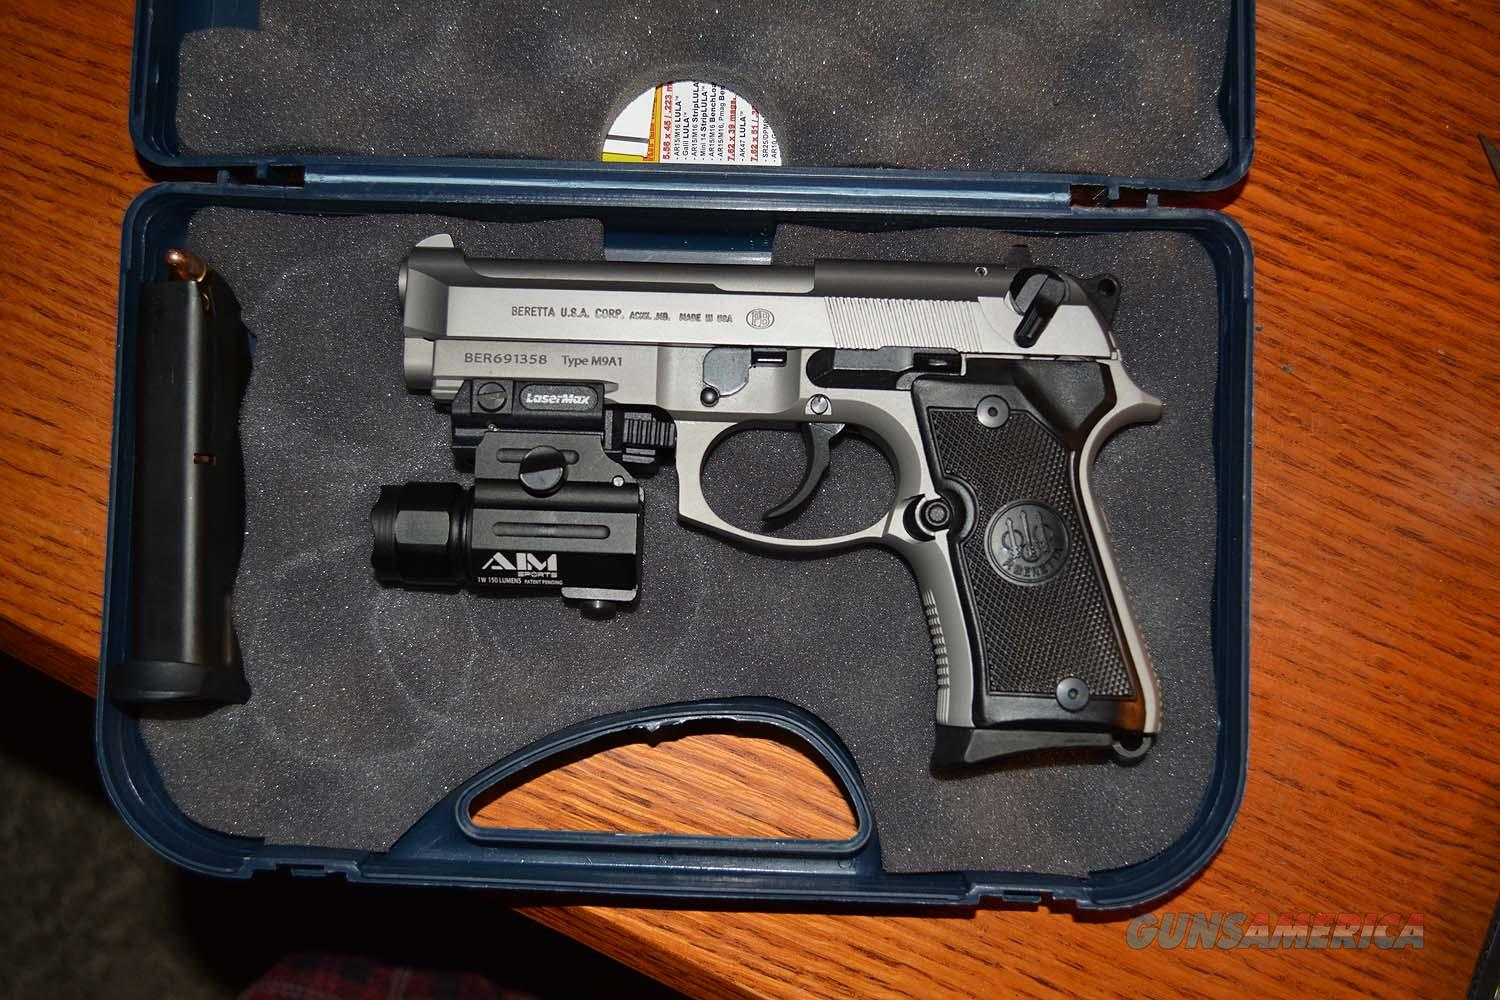 BERETTA 92FS COMPACT INOX (Stainless) 9MM COMPLETE PACKAGE including  LaserMax Laser/SpotLight